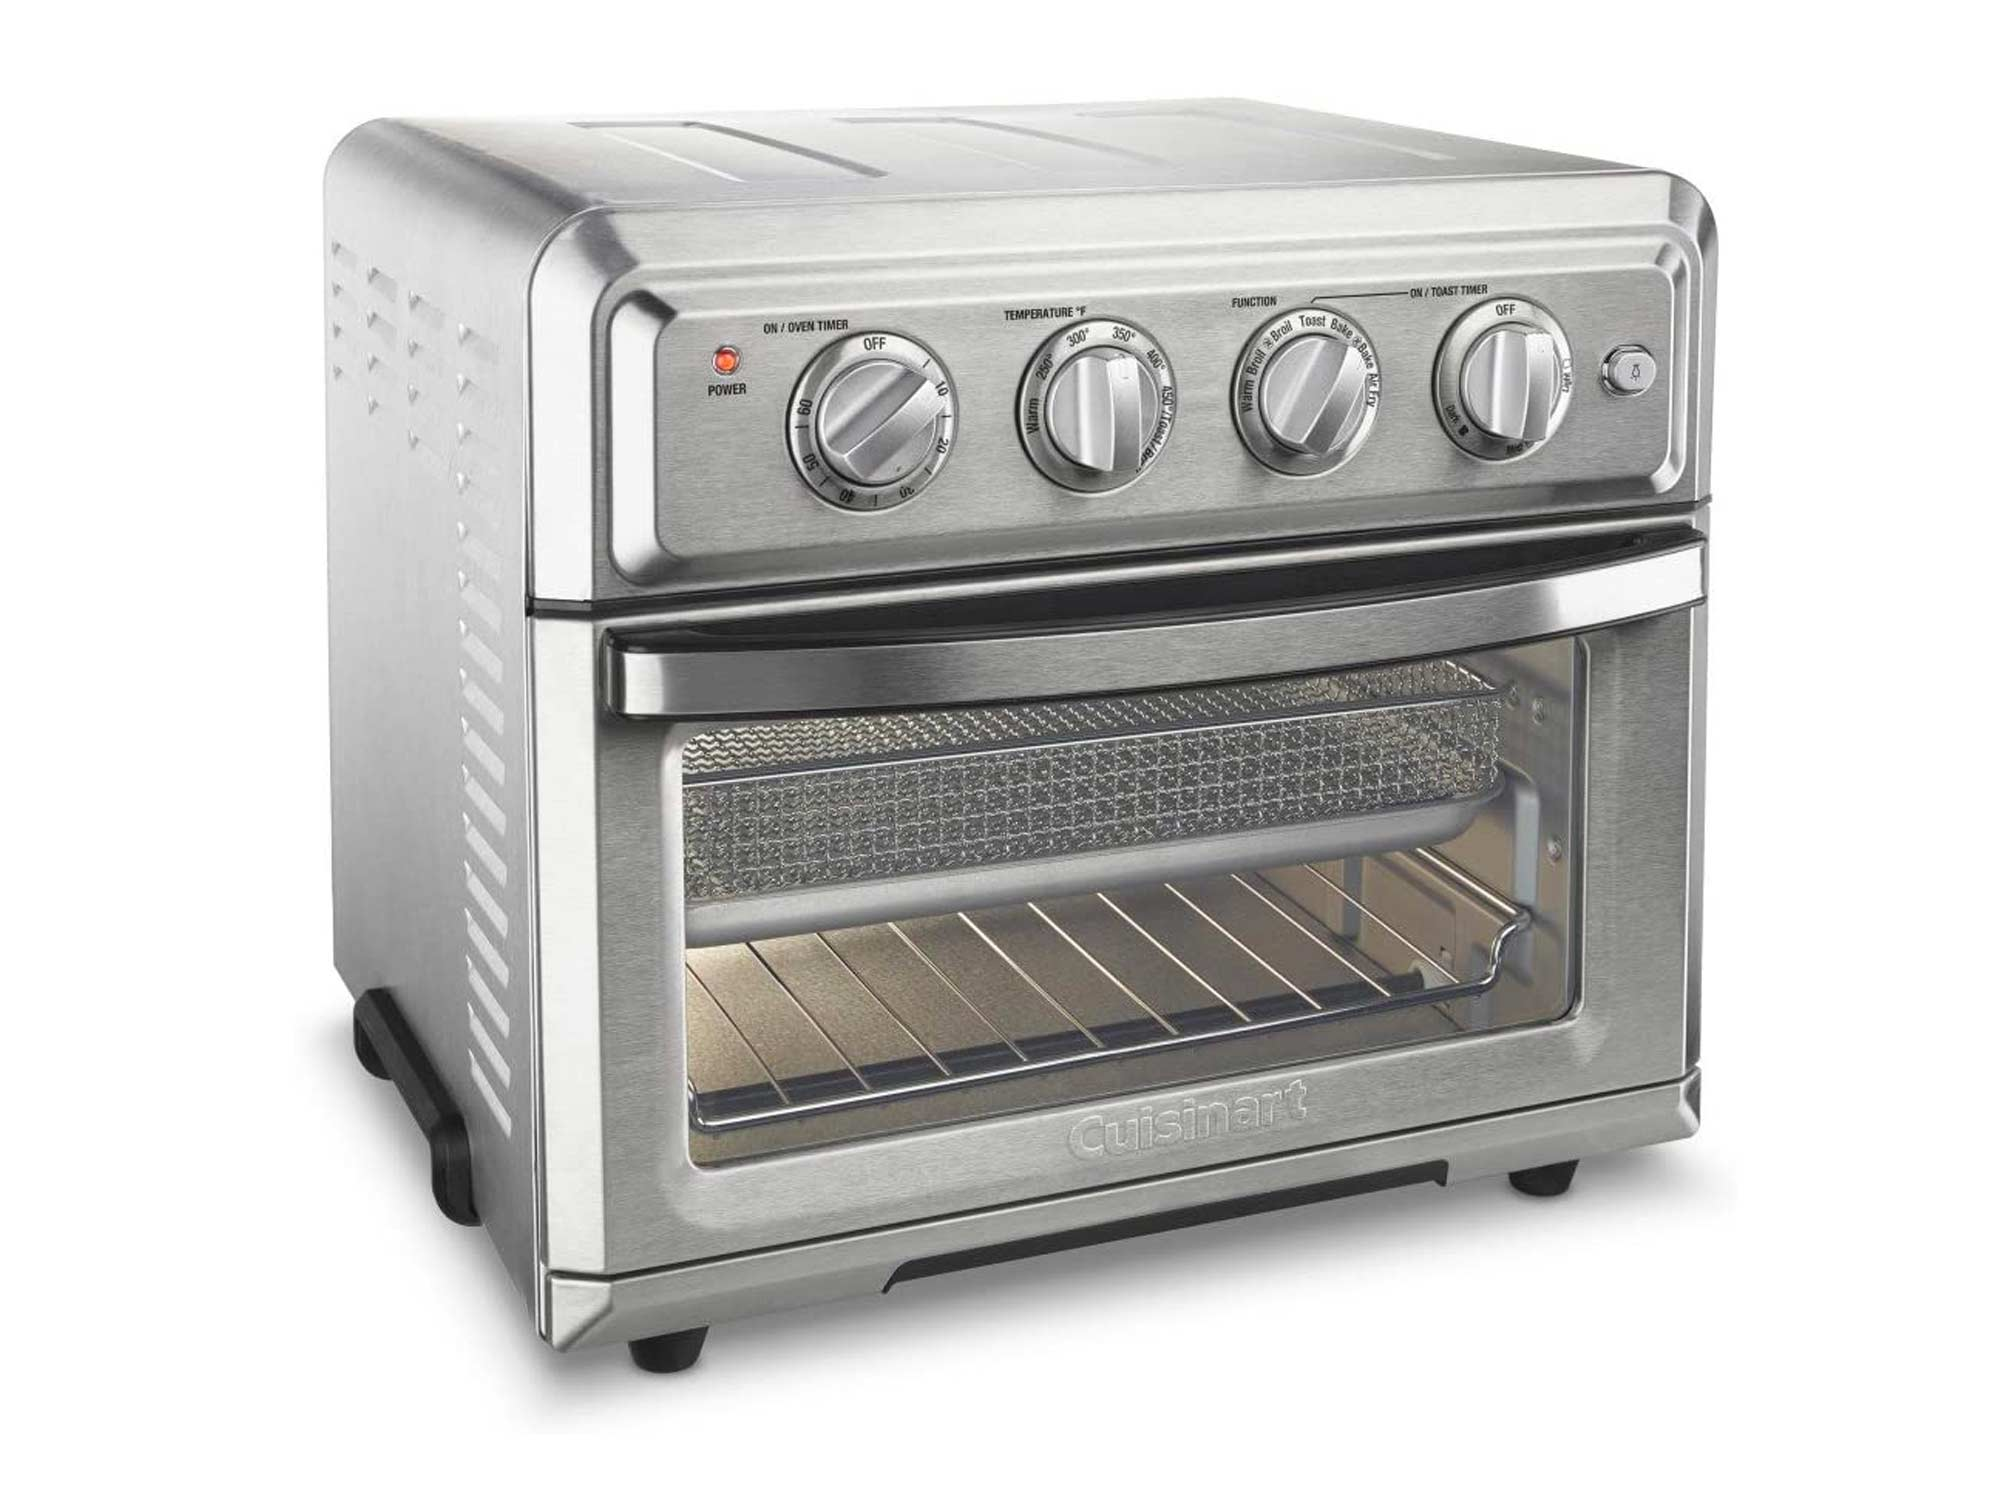 Cuisinart Convection Toaster Oven Airfryer, Silver